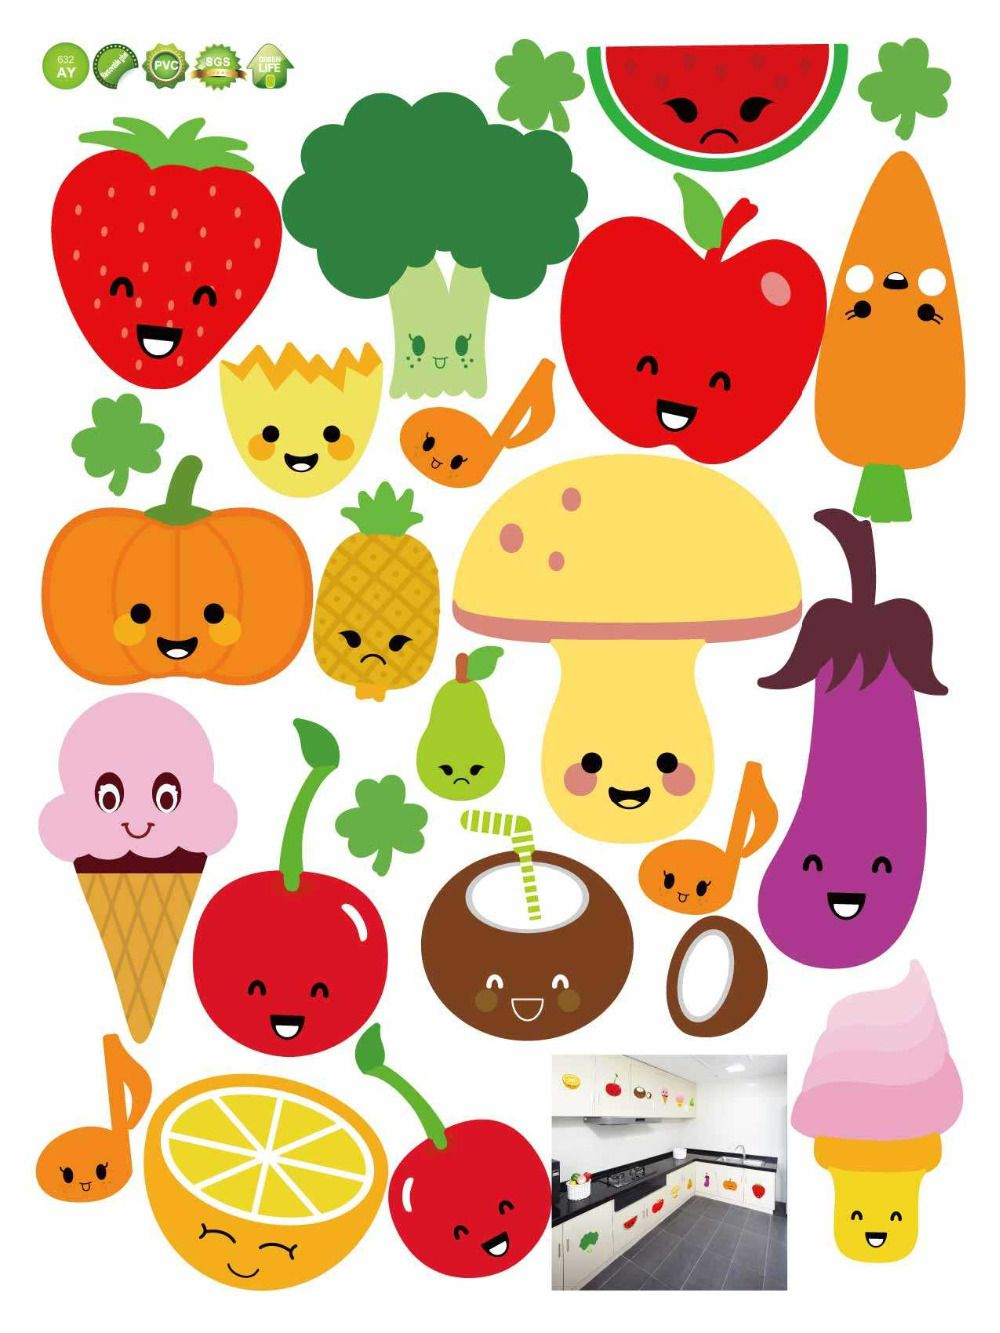 Kitchen Fruit Wall Sticker Decal Kitchenware Wall Tile Stickers ...